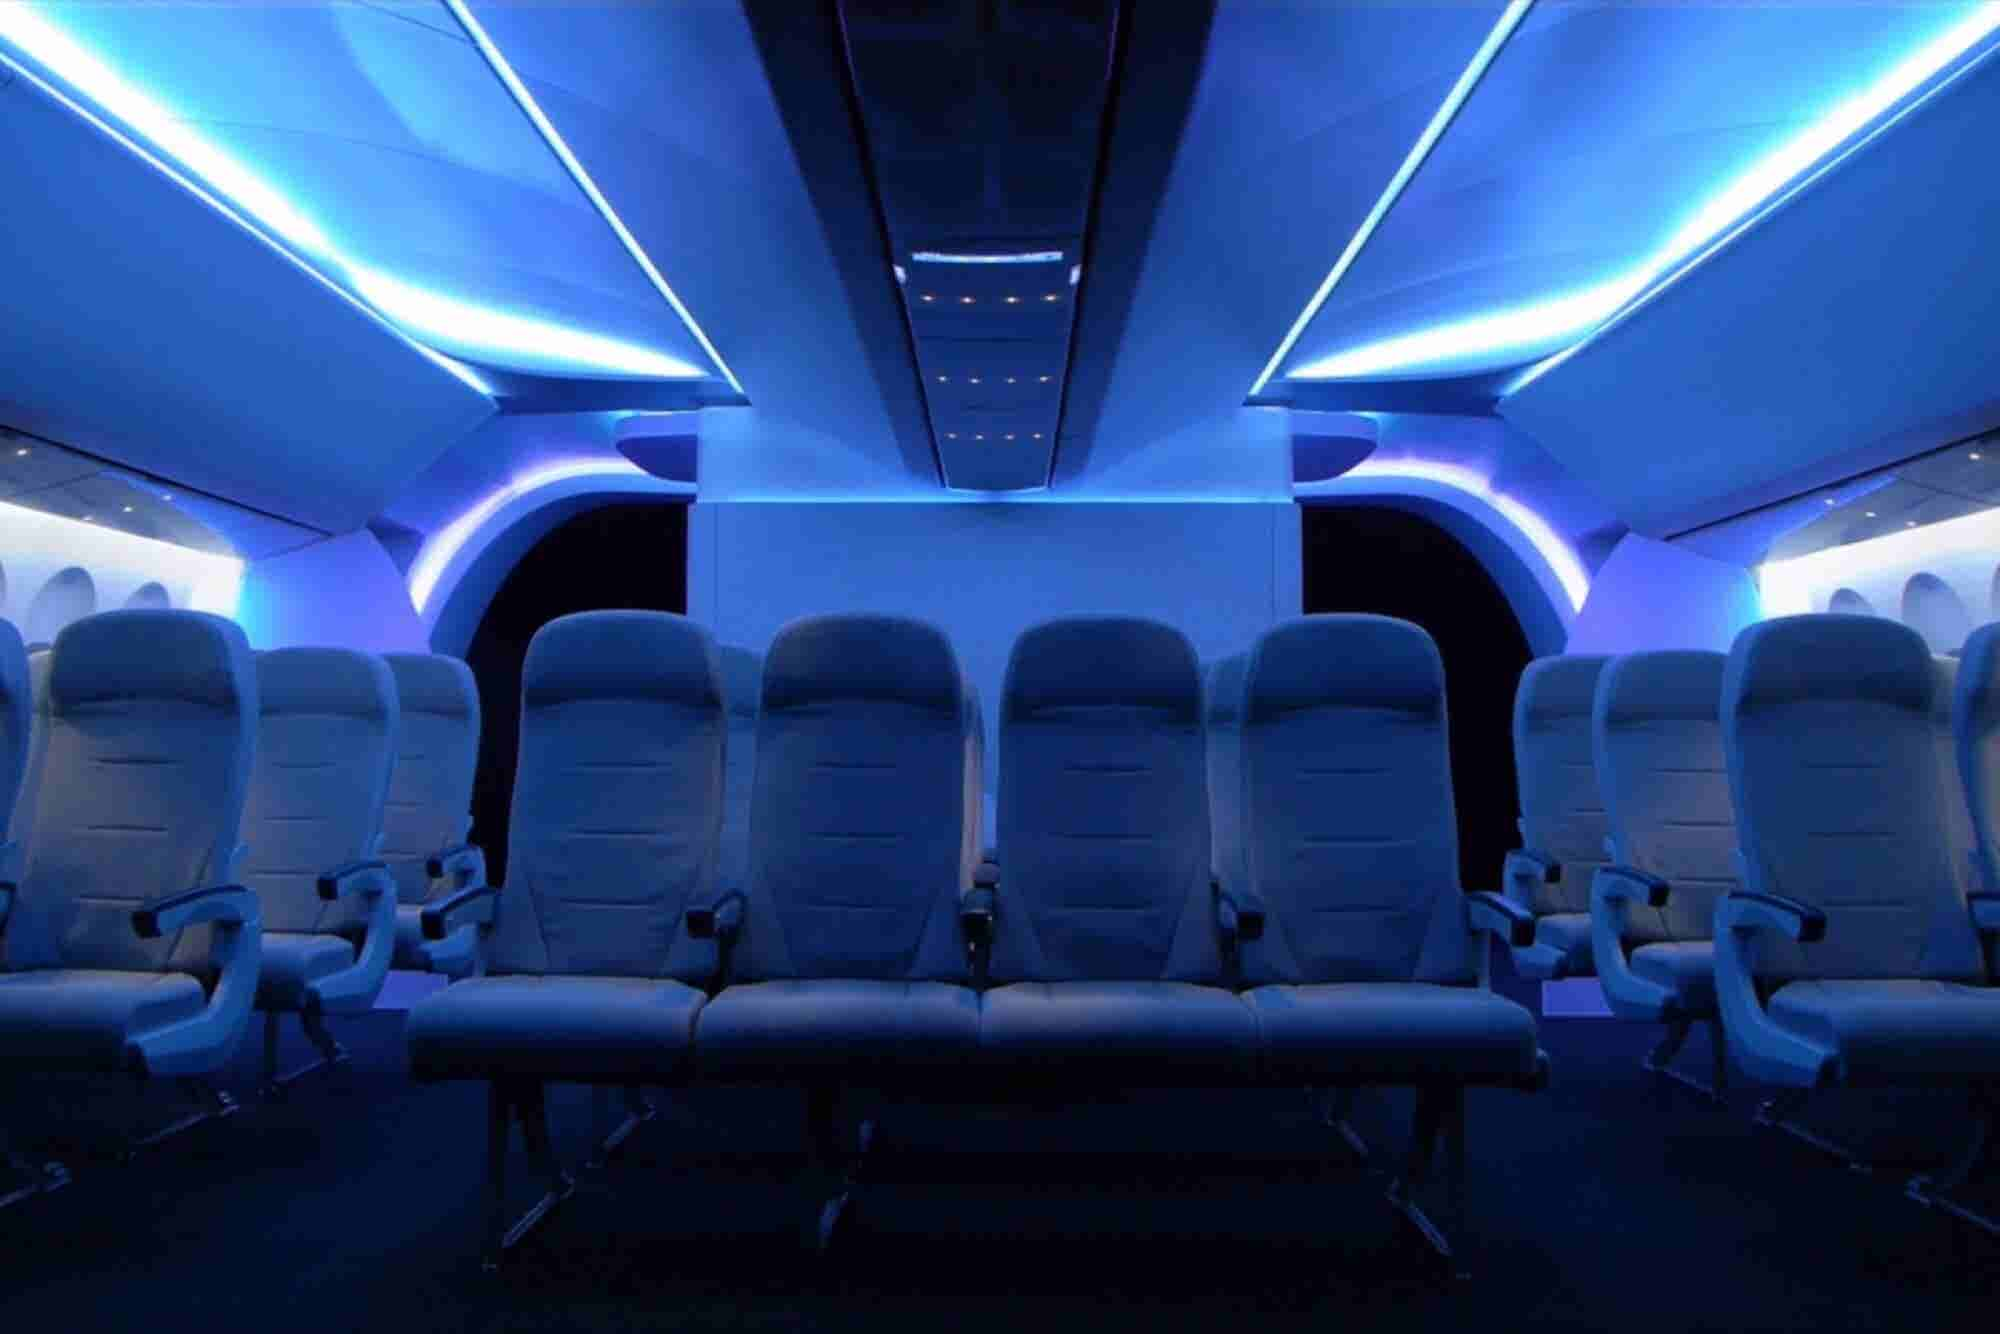 These 8 Innovative Airplane Design Winners Are the Stuff of Travelers' Dreams